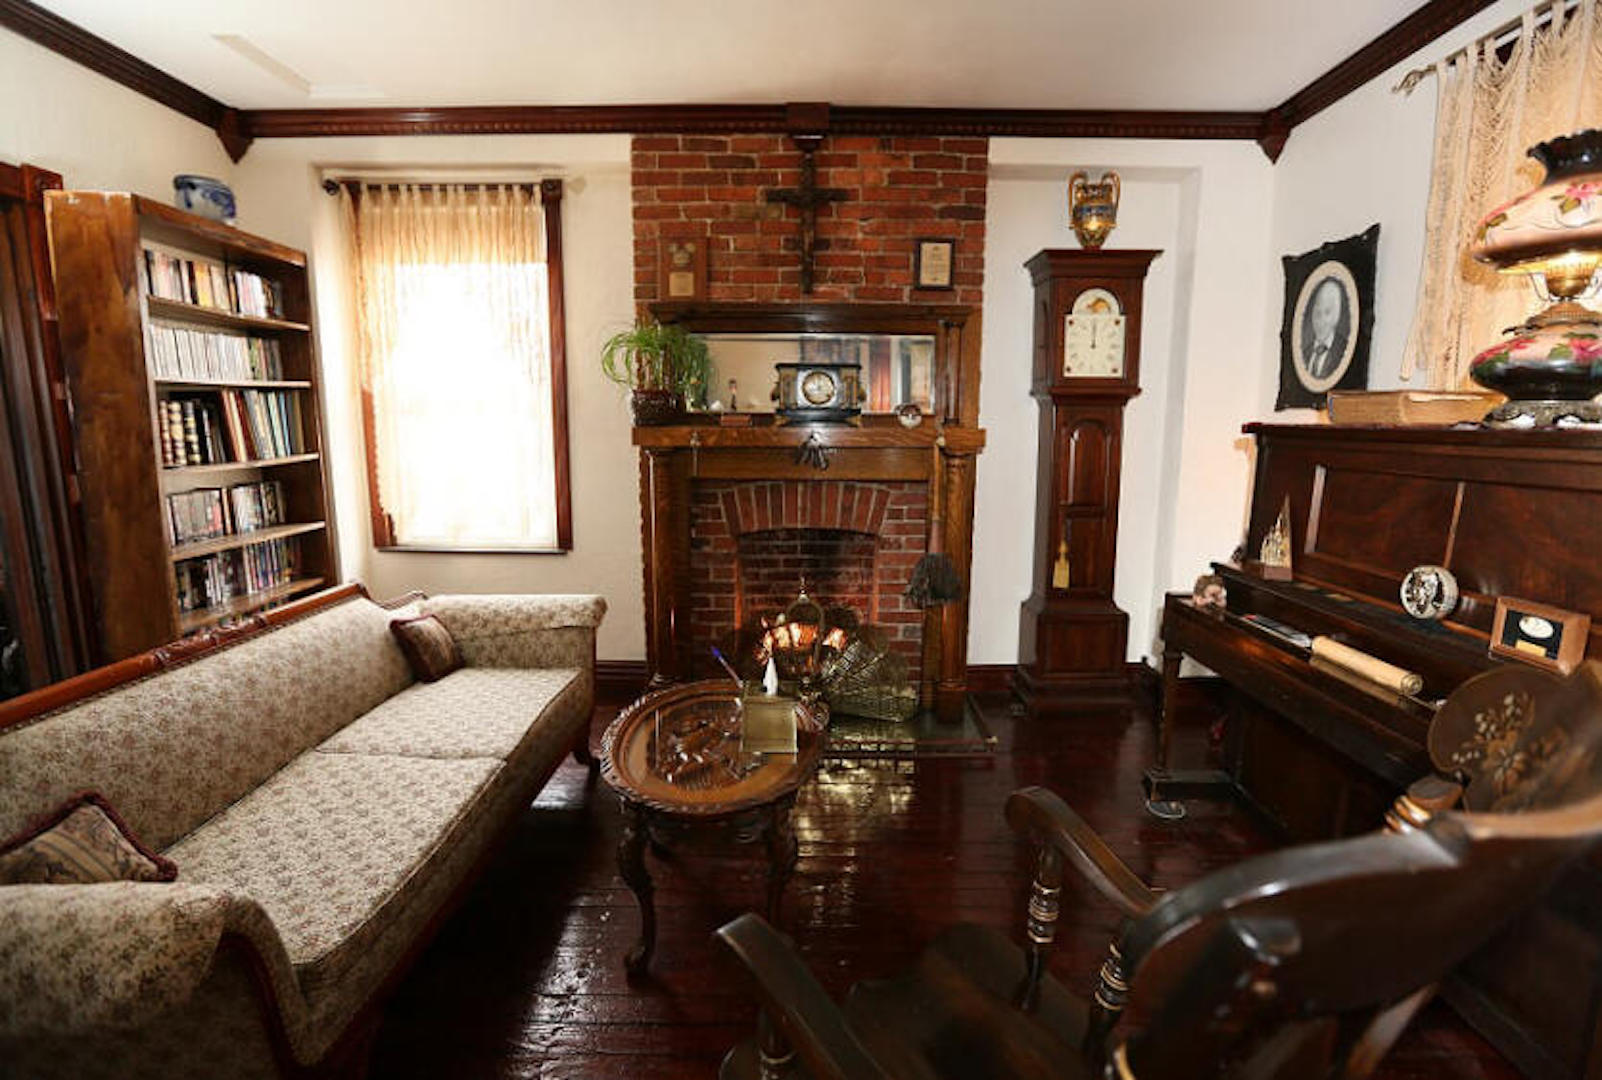 A living room filled with furniture and a fireplace at The Old Parsonage Bed and Breakfast.